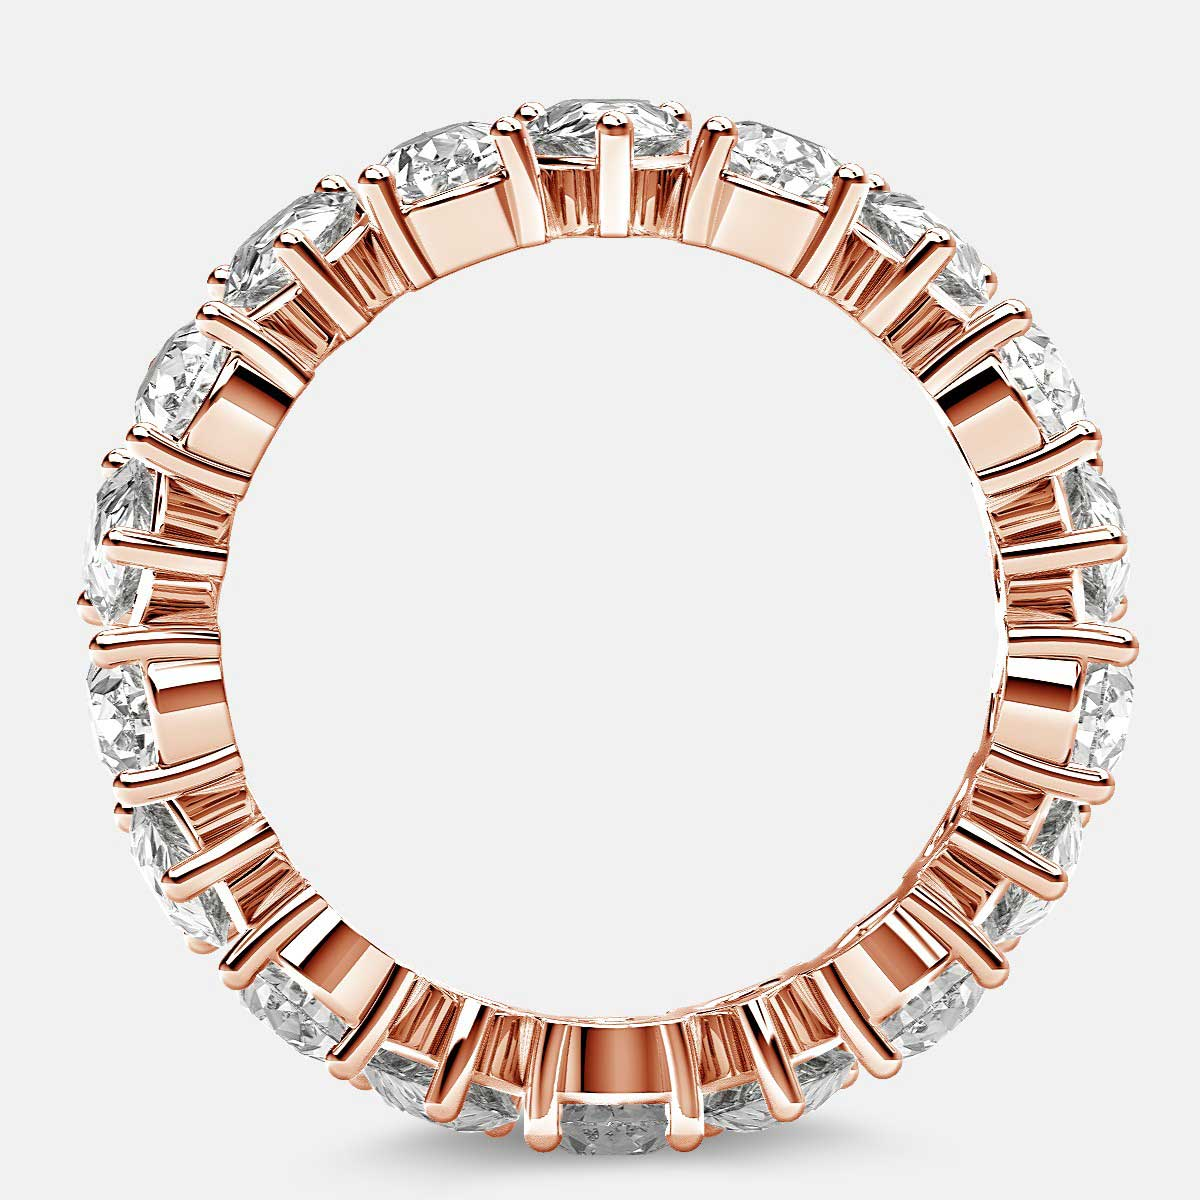 Prong Set Eternity Ring with Pear Shaped Diamonds in 18k Rose Gold